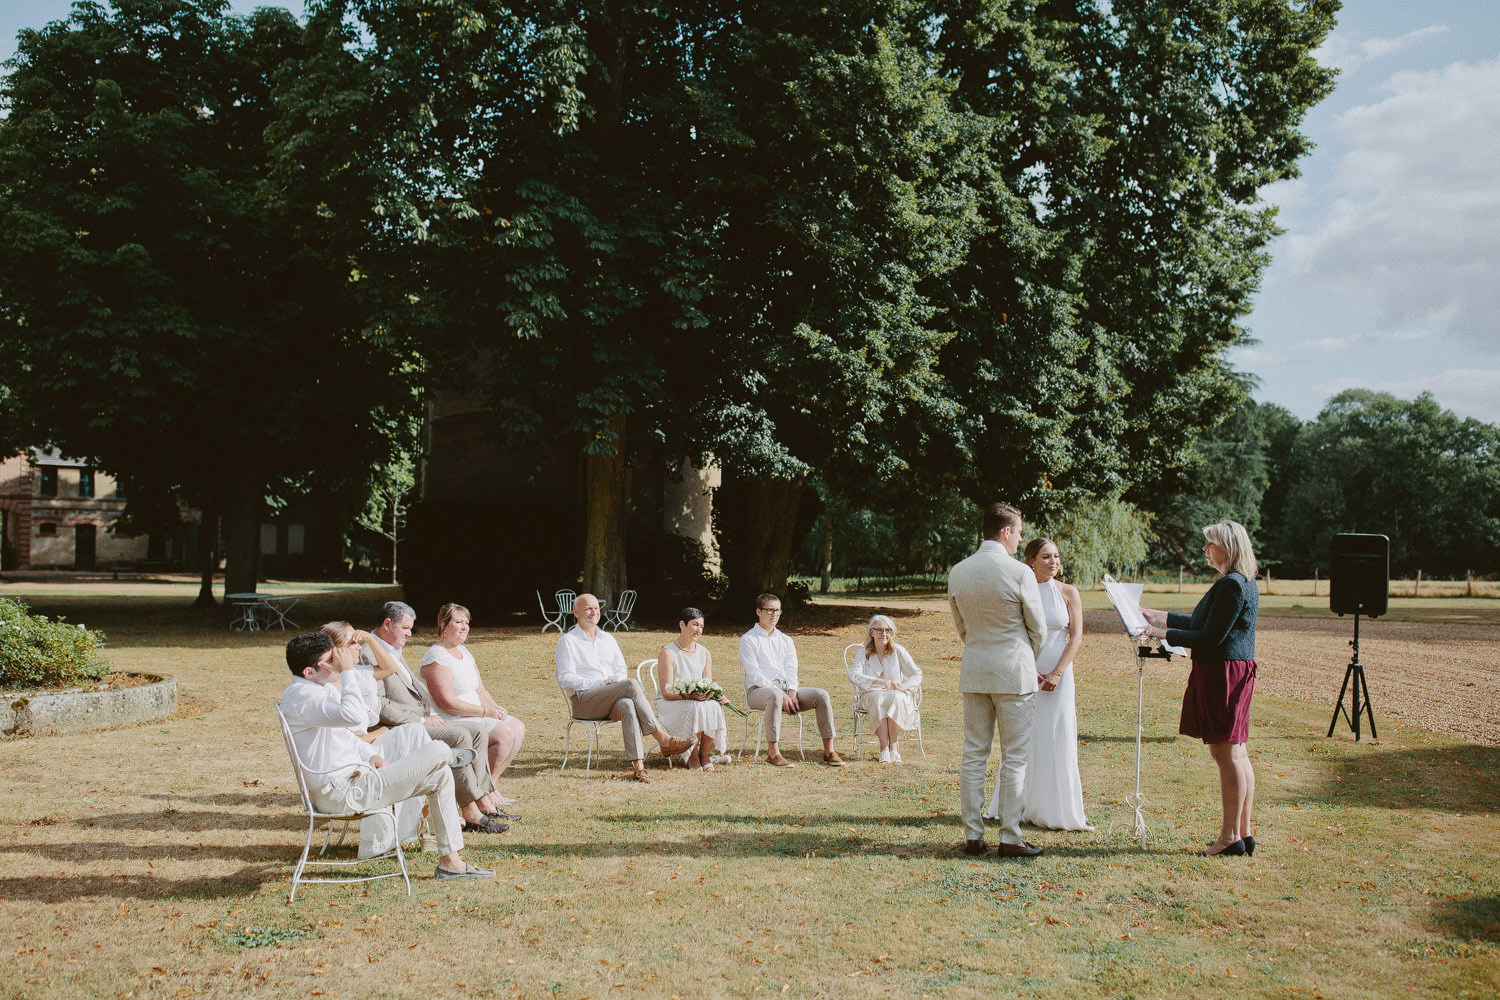 Outdoor wedding ceremony at Chateau de Bouthonvilliers